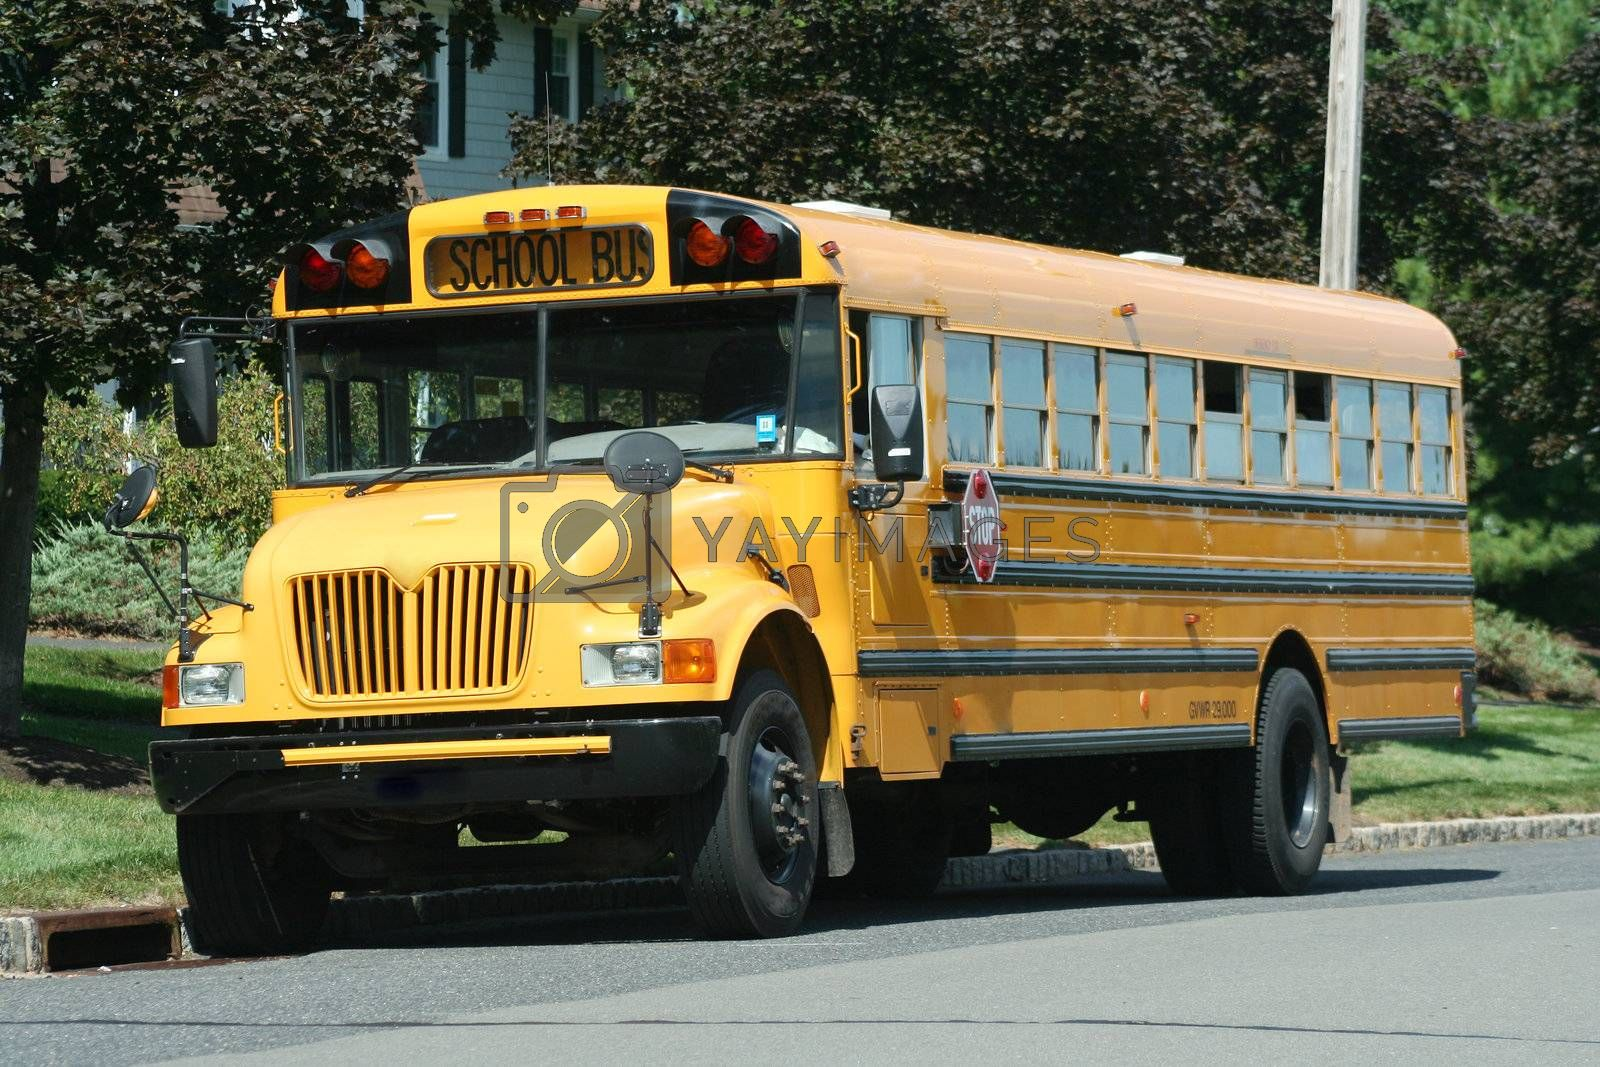 A Yellow Schoolbus parked on the street